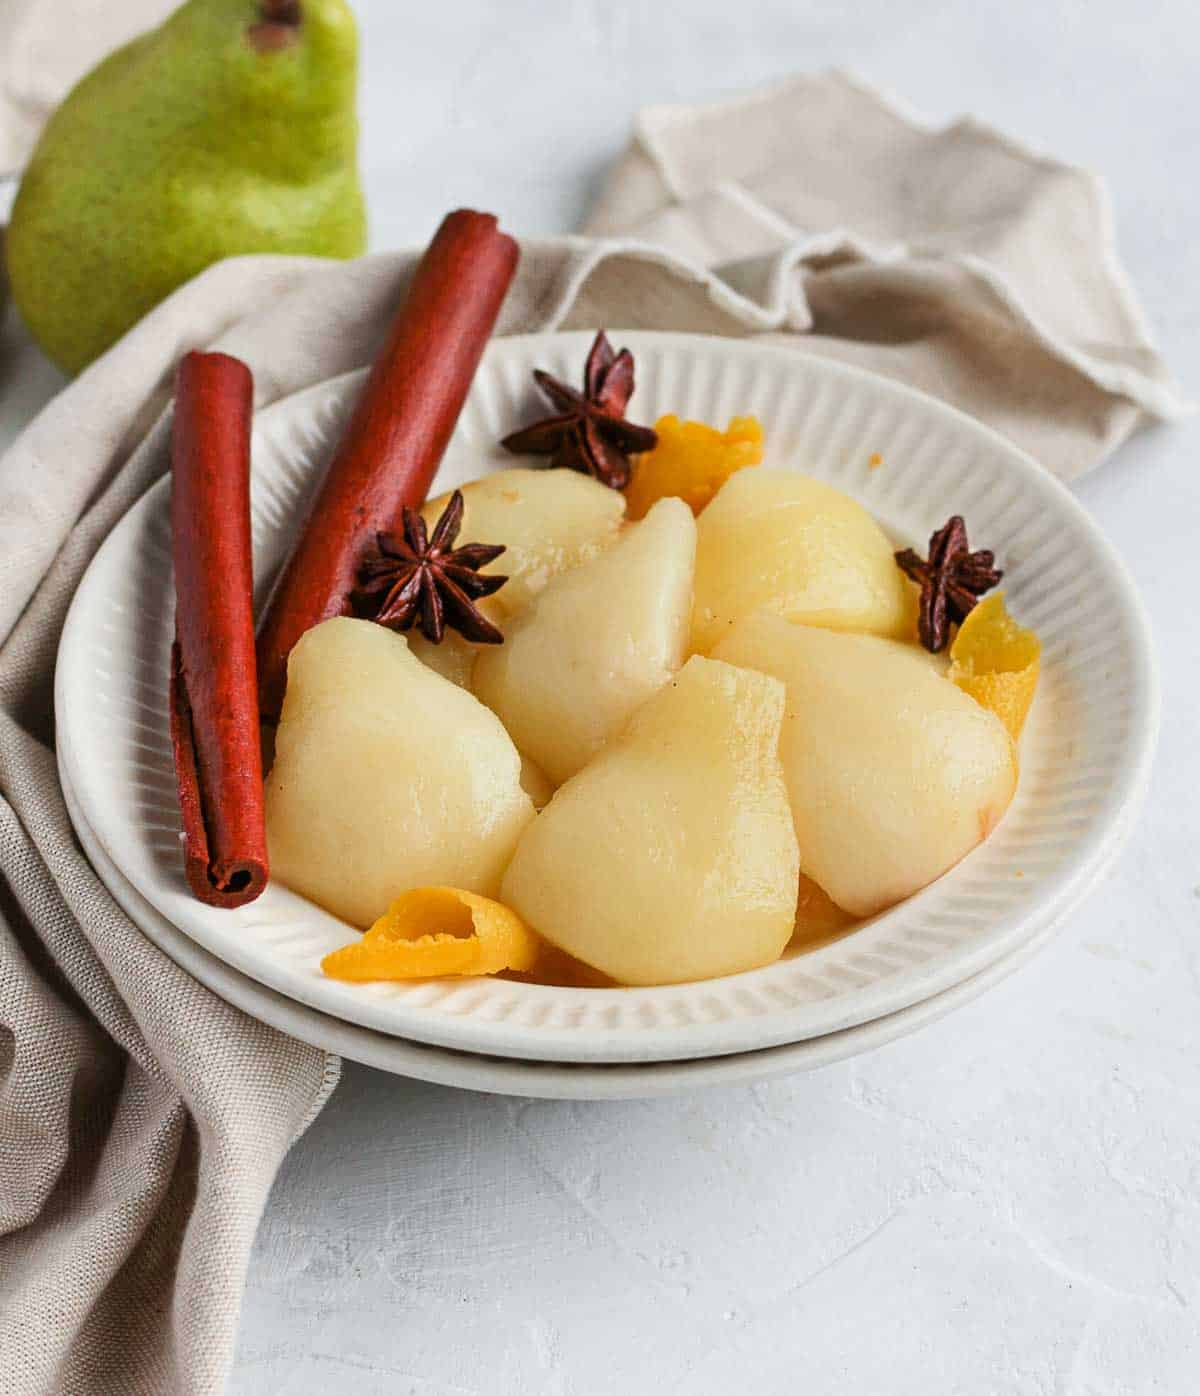 Cooked pears in a white bowl with beige napkin.